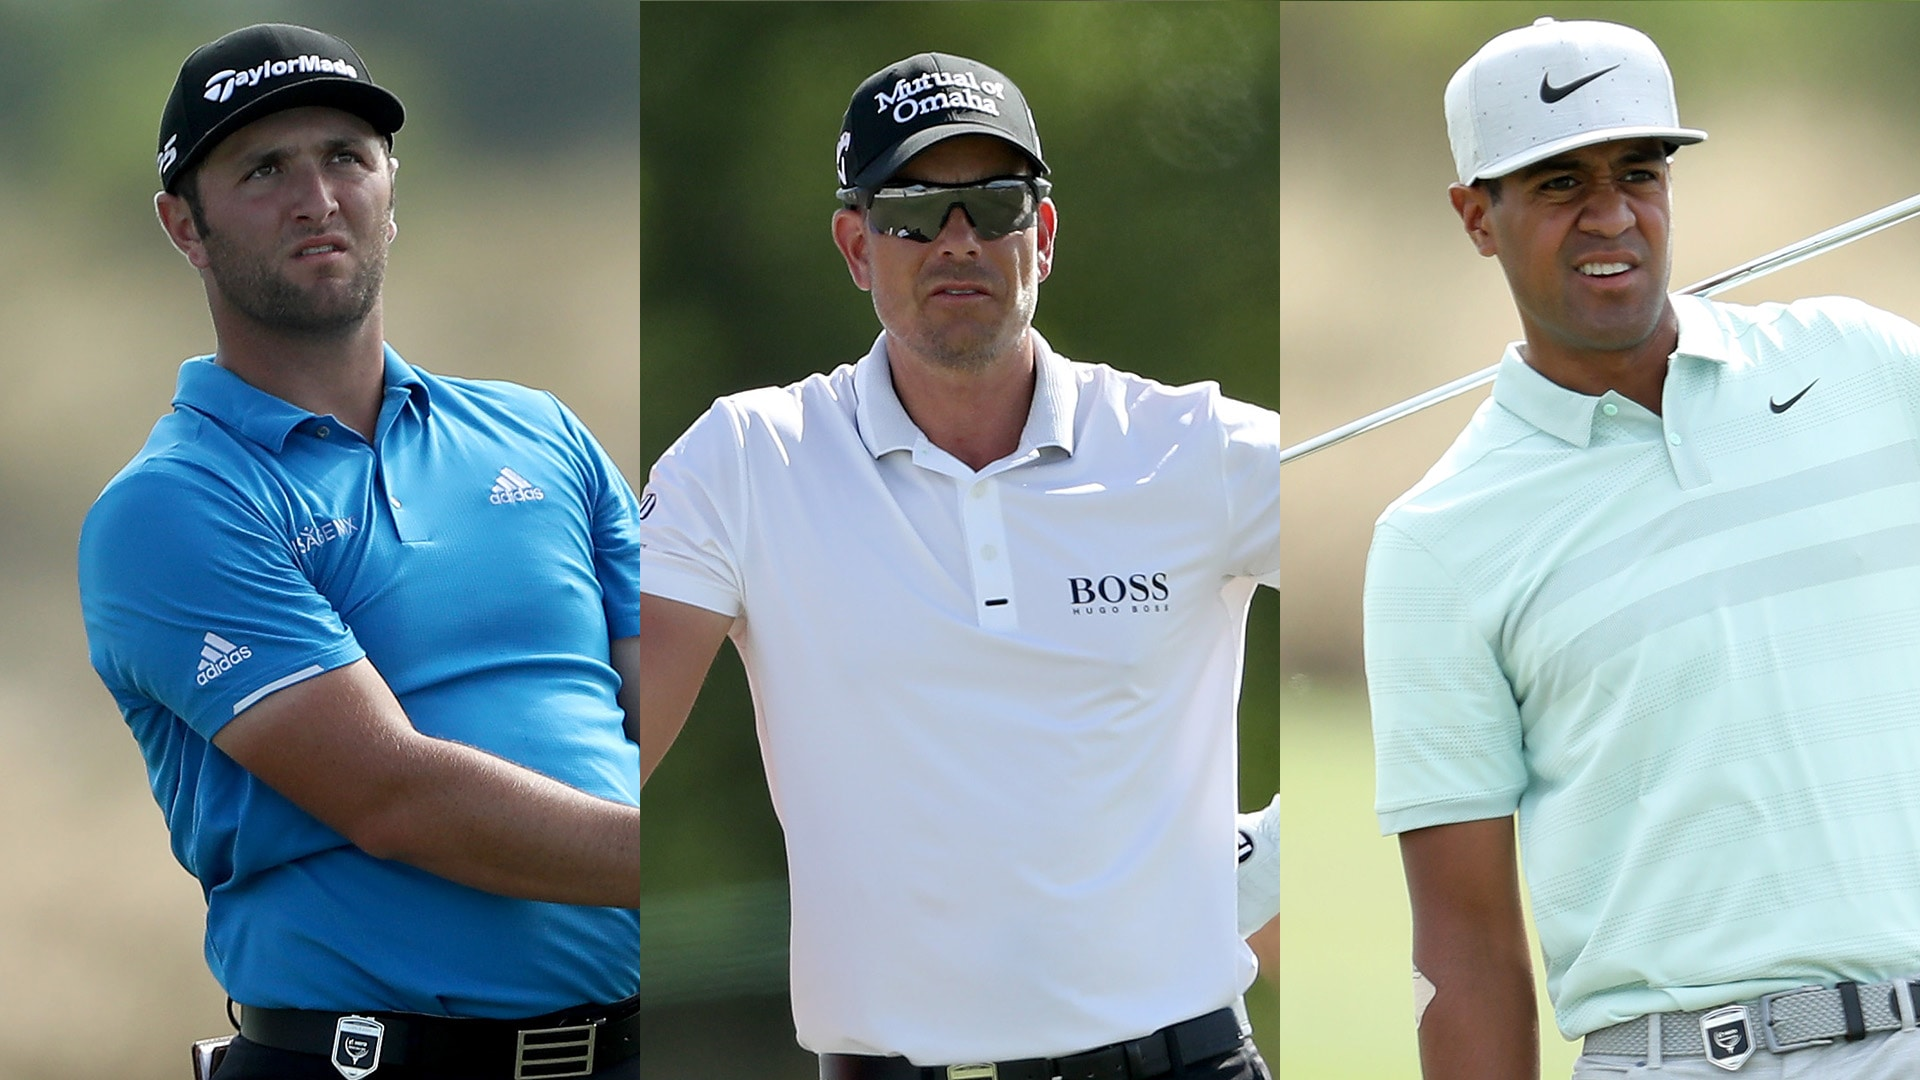 Jon Rahm, Henrik Stenson and Tony Finau at the 2018 Hero World Challenge